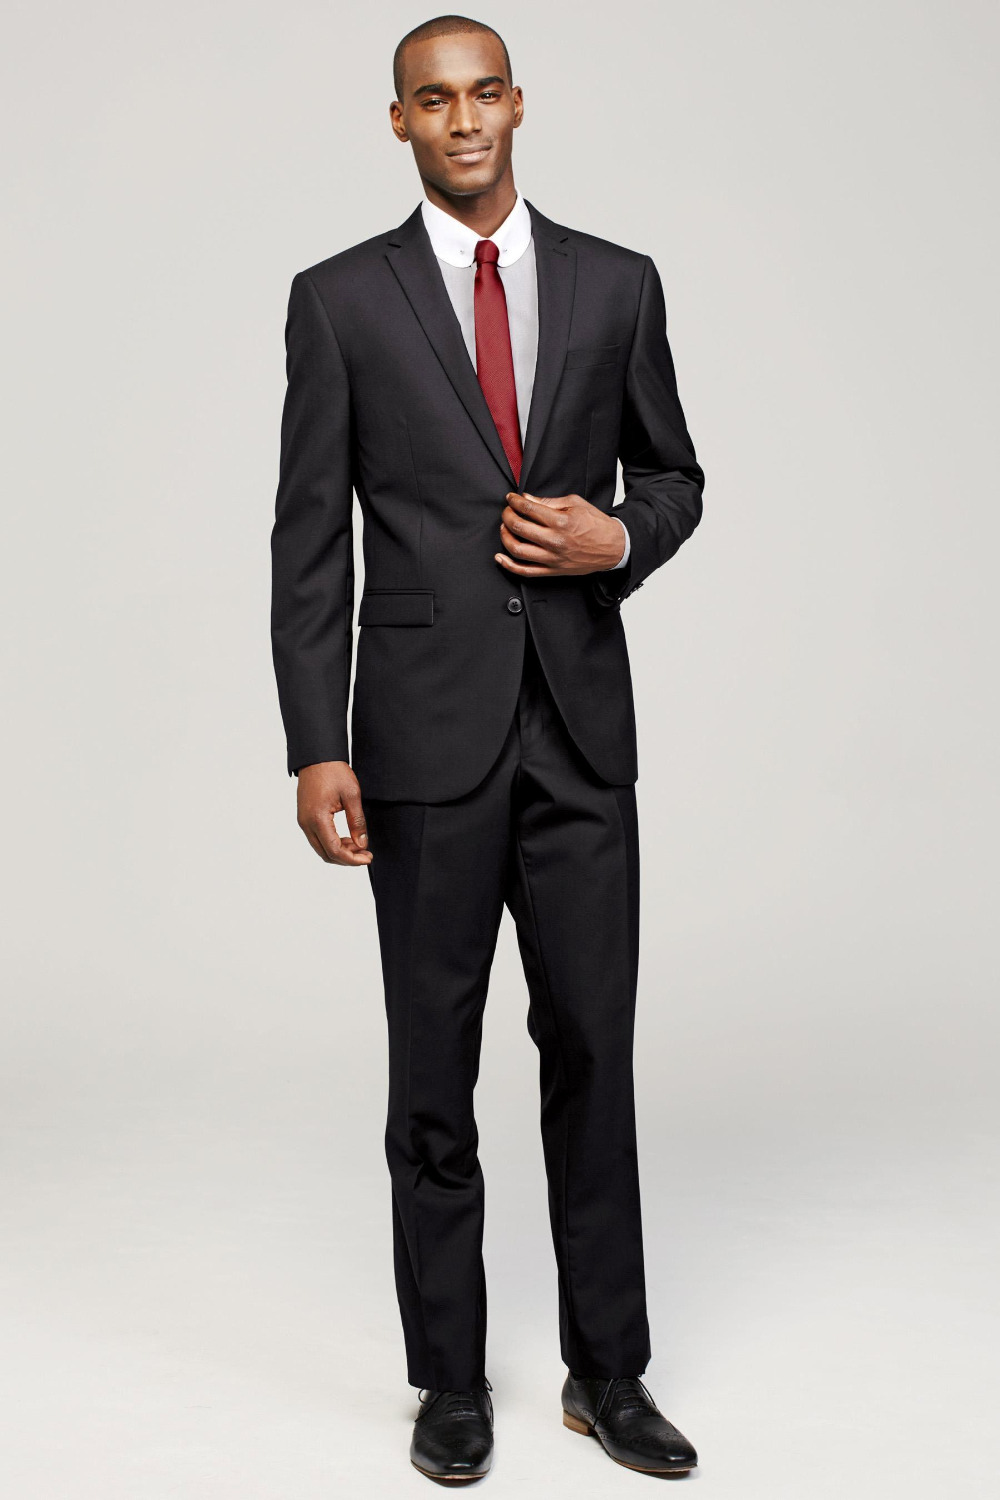 Popular Men's Business Suit Styles-Buy Cheap Men's